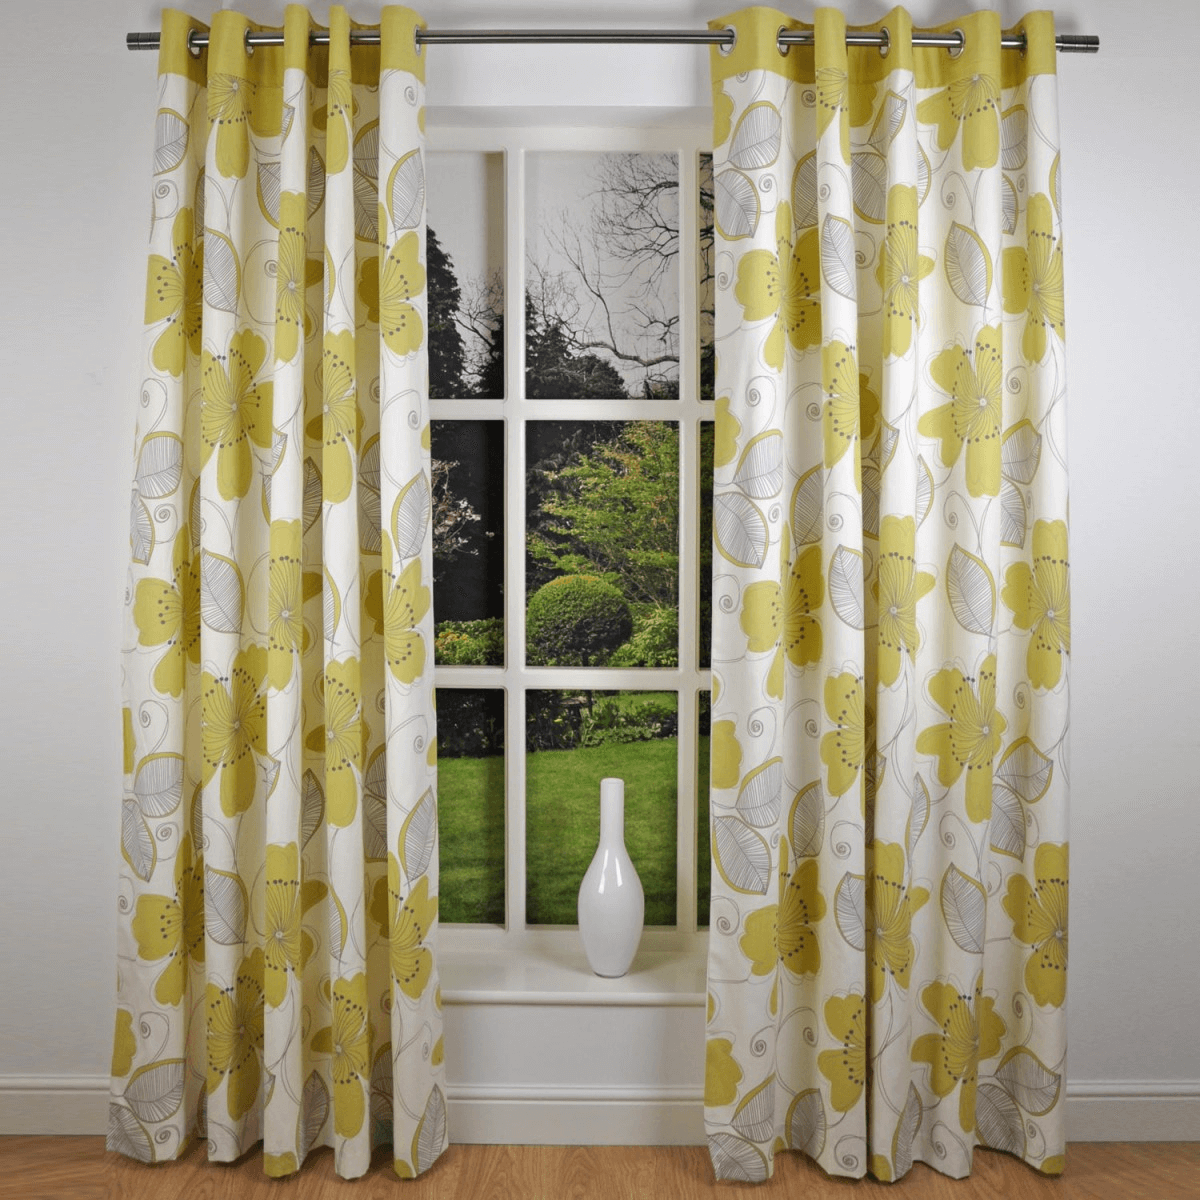 Bold print curtains for front window decoration